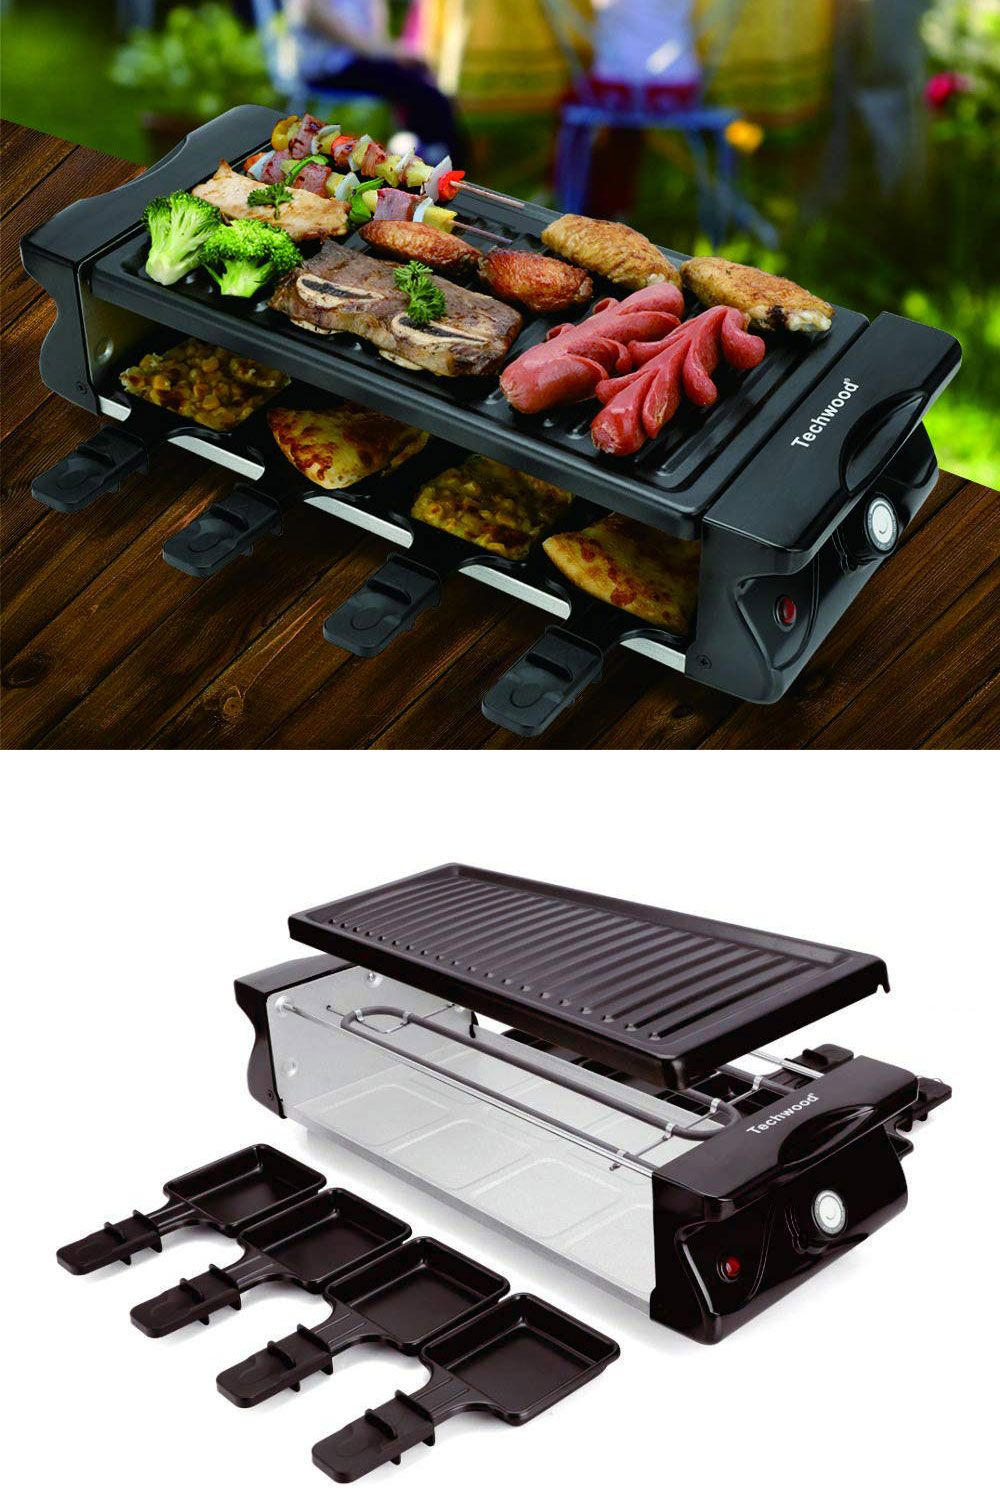 Techwood Electric Raclette Grill Is The Best Way For Getting